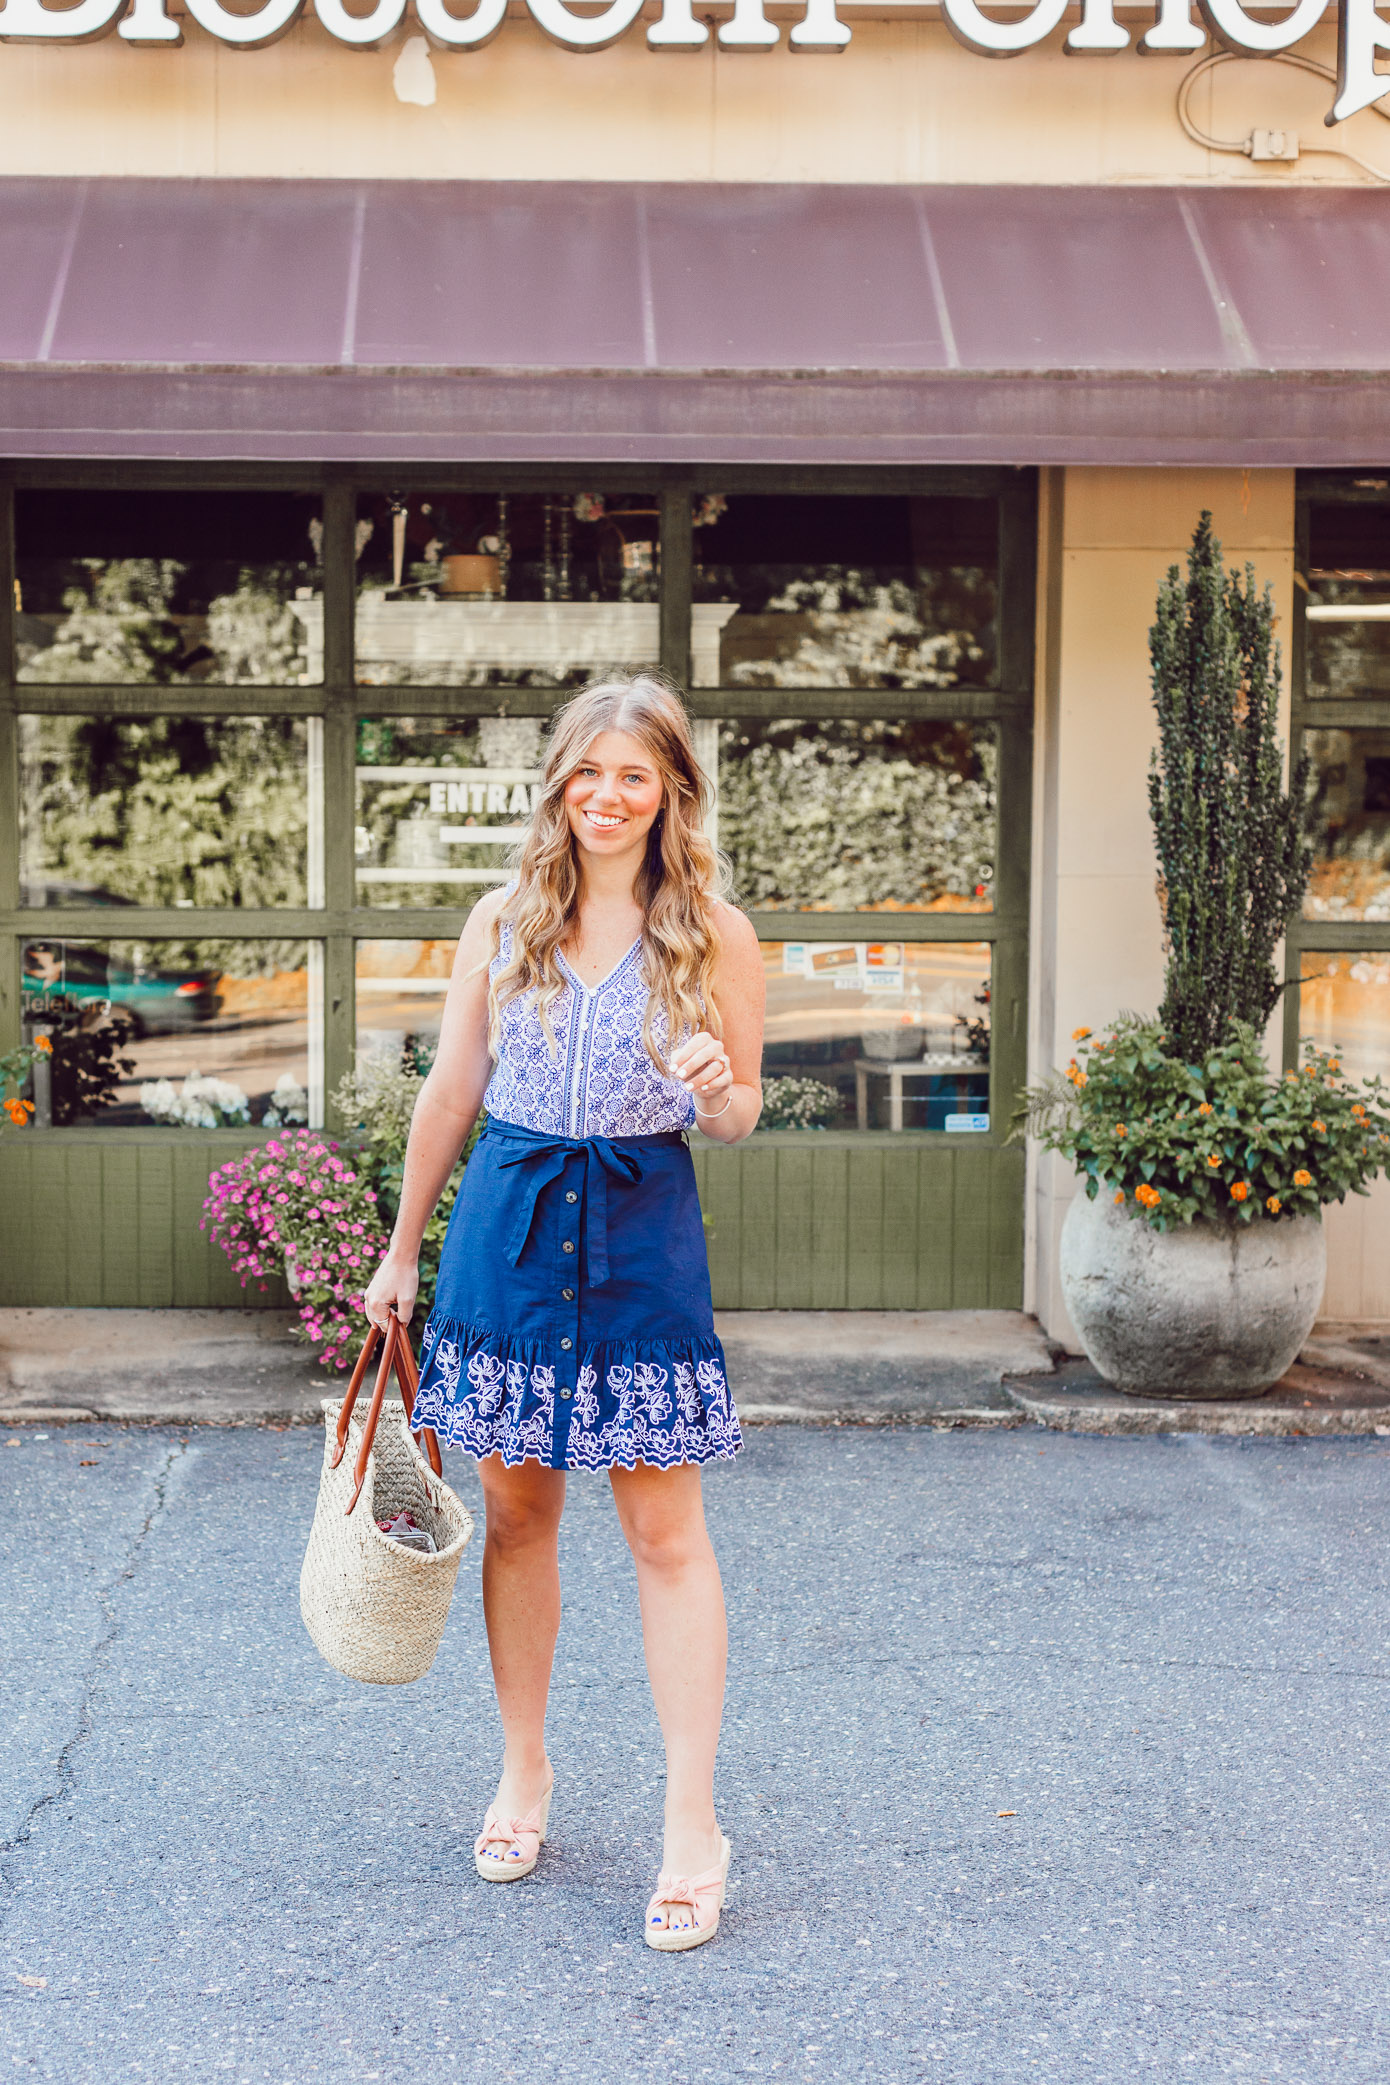 Summer Blues: Favorite Blue and White Pieces for Summer | Navy Embroidered Skirt styled on Louella Reese Blog